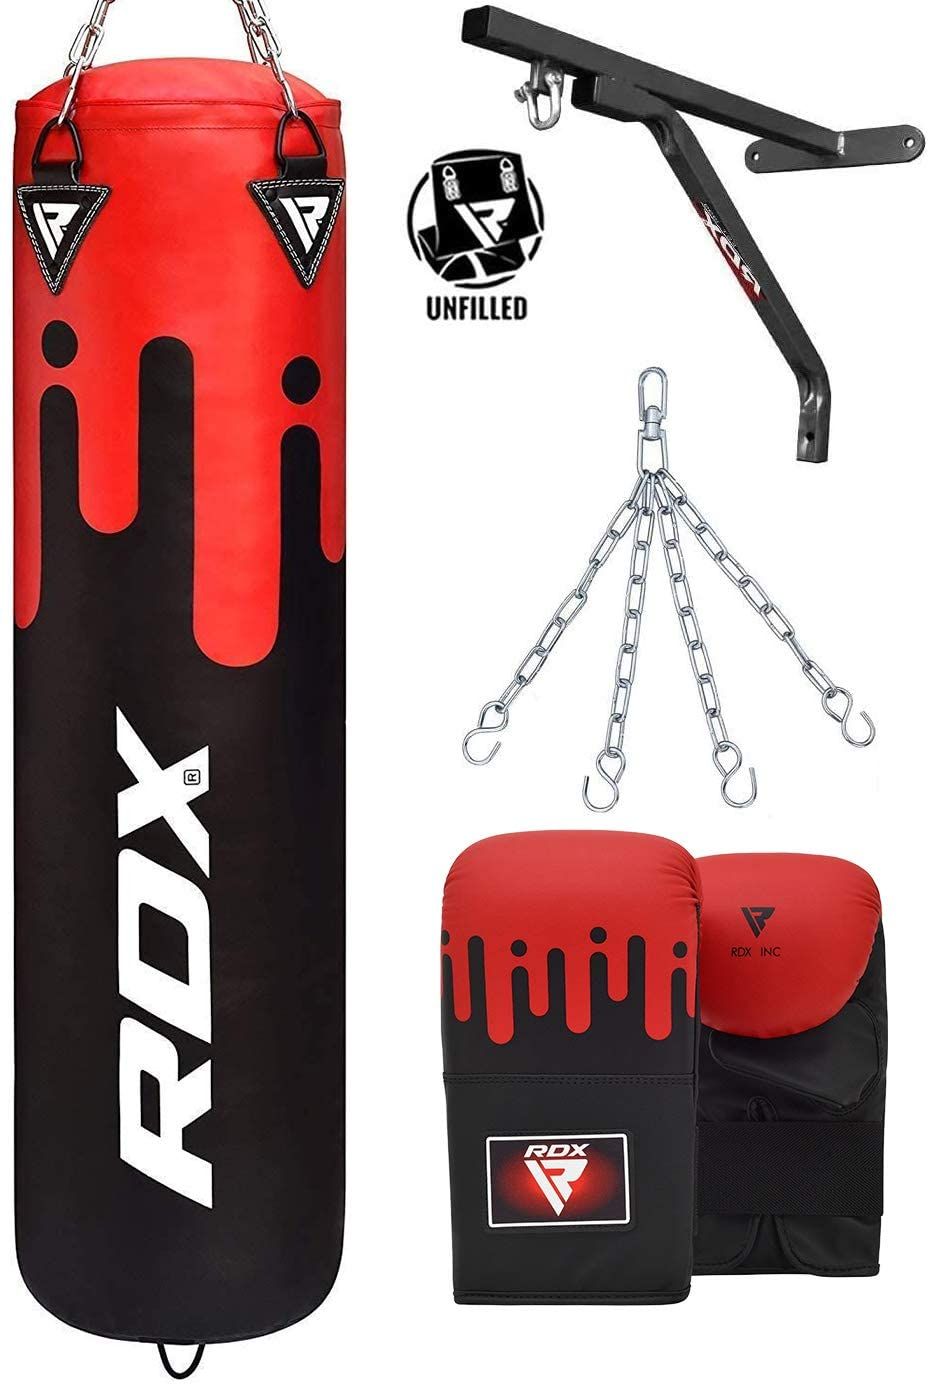 RDX Punching Bag UNFILLED Set Muay Thai Training Gloves with Punch Mitts Hanging Chain Wall Bracket, Great for MMA, Kick Boxing, Martial Arts, 4PC Available in 4FT 5FT